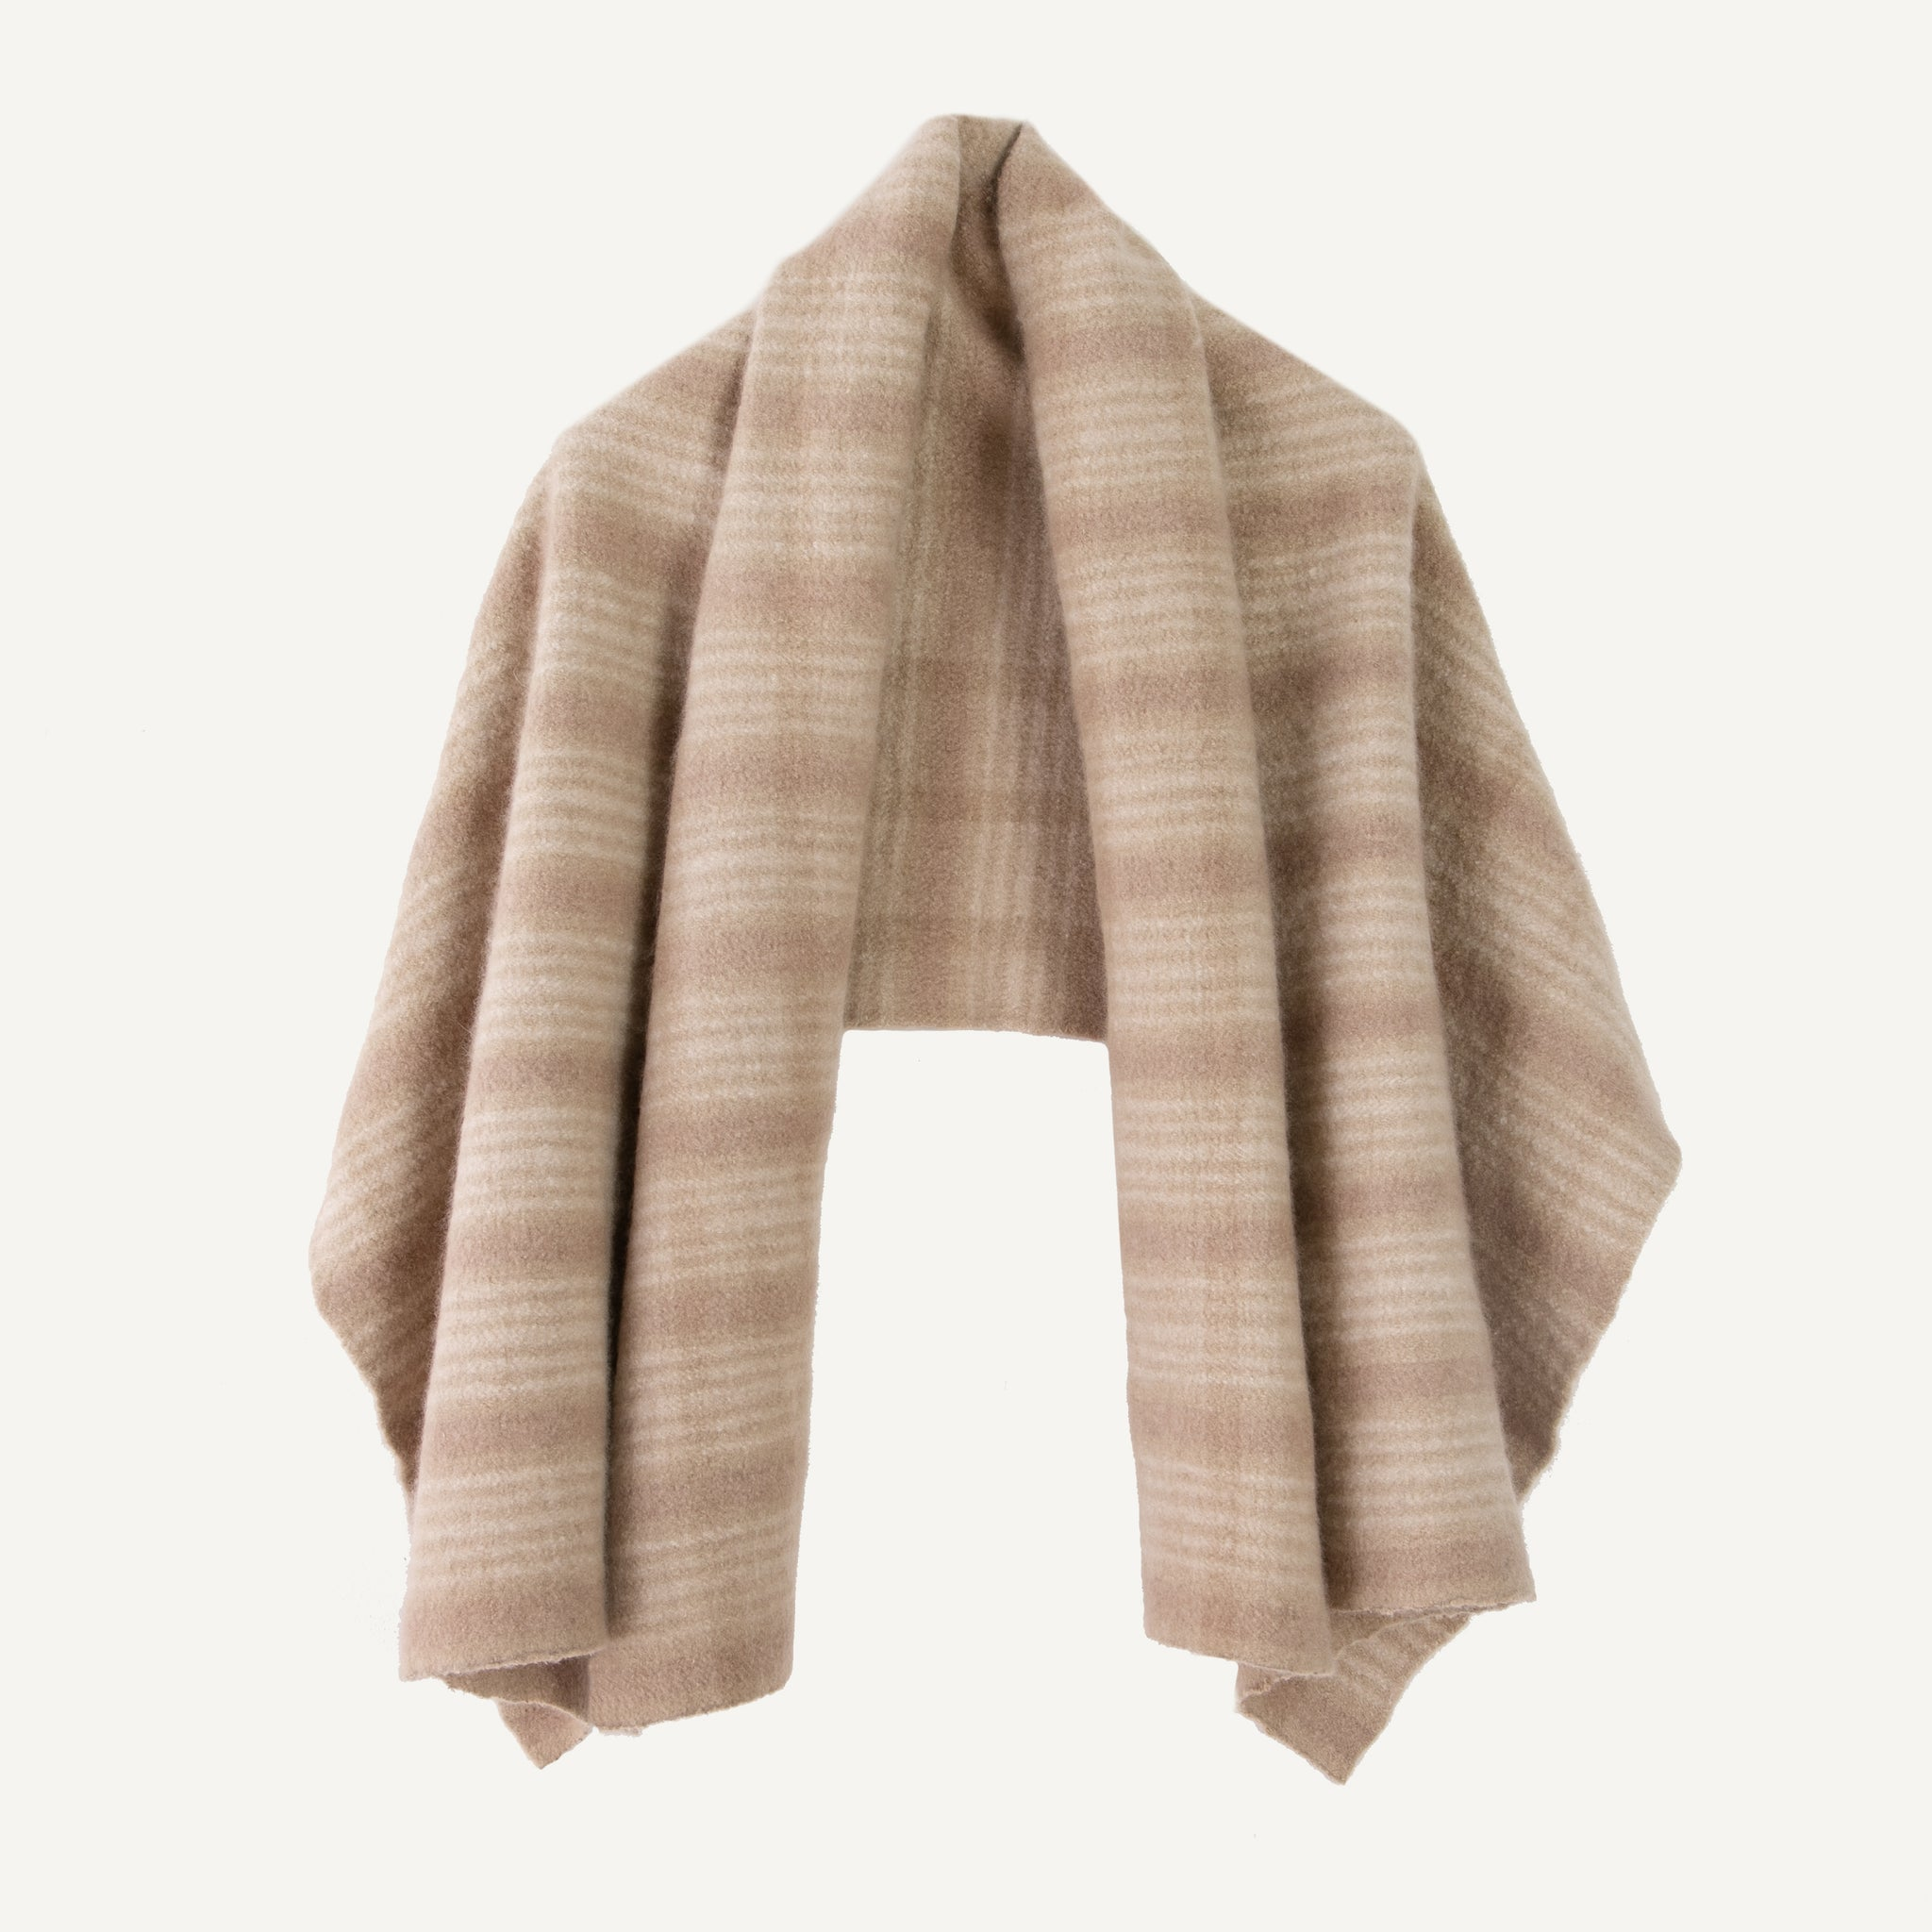 HIMALAYAN CASHMERE STOLE